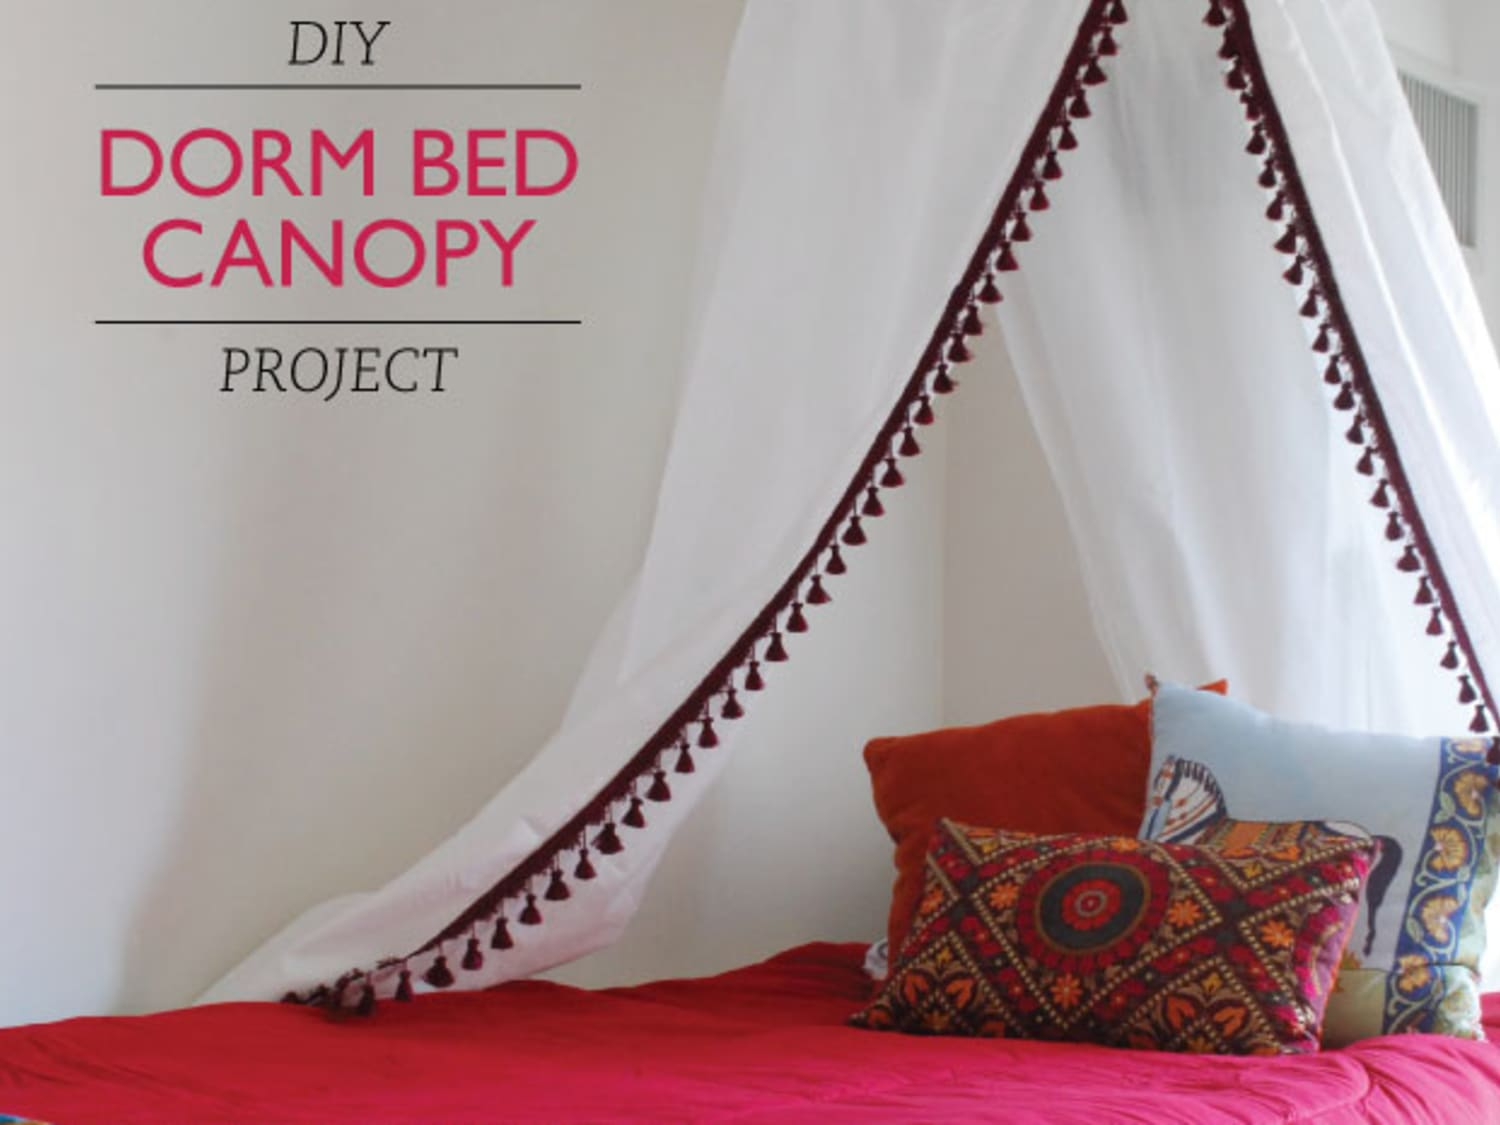 Get Laken S Look Diy Dorm Bed Canopy Project Apartment Therapy